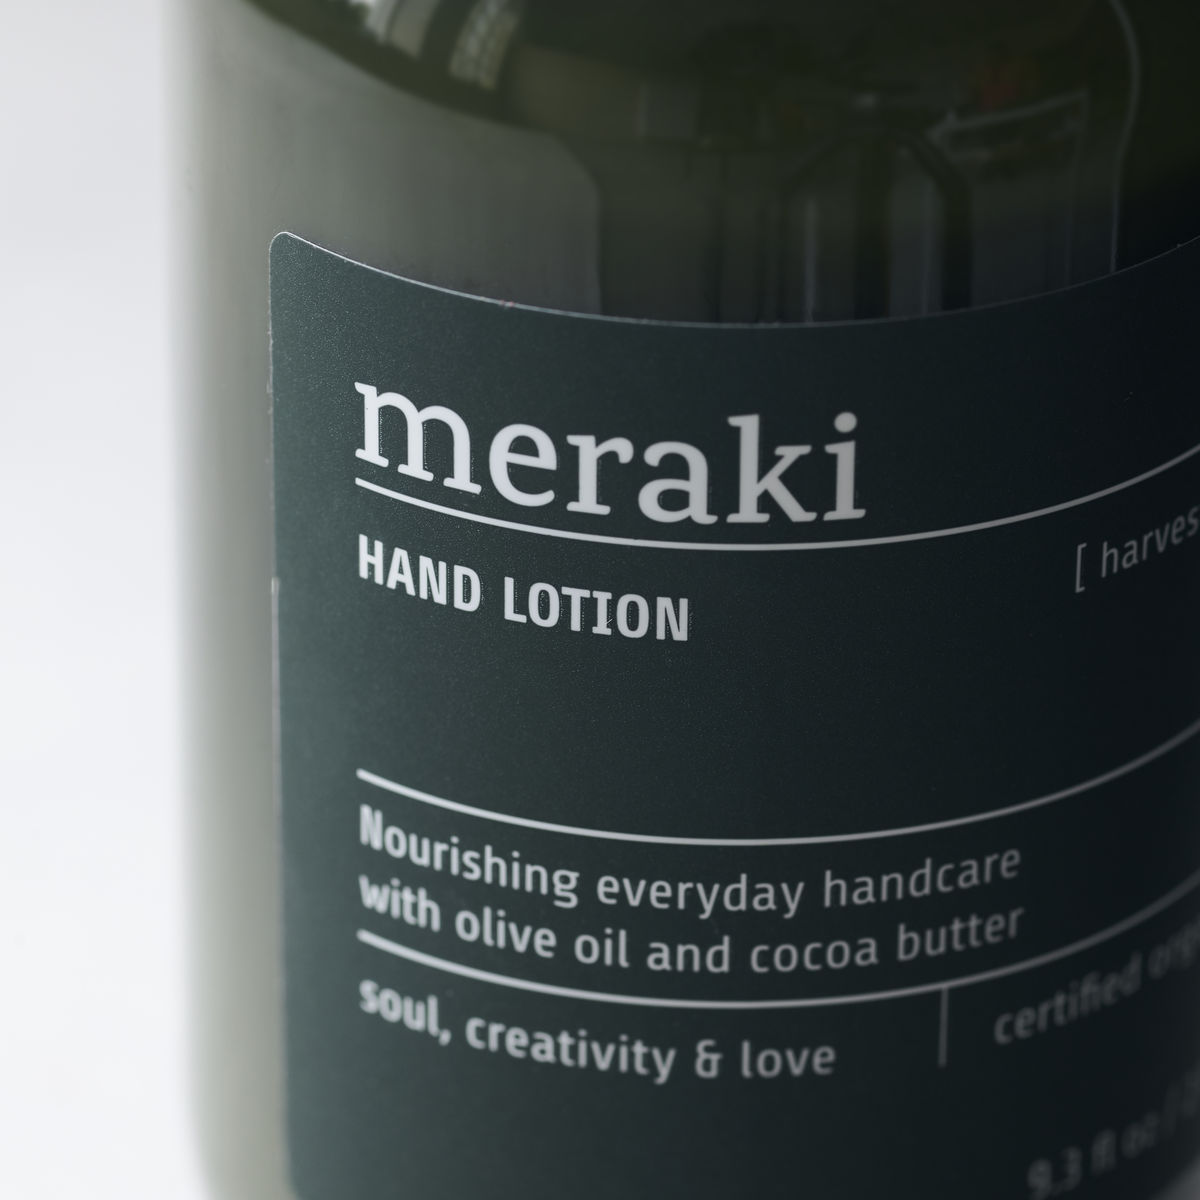 Meraki Harvest Moon Hand Lotion